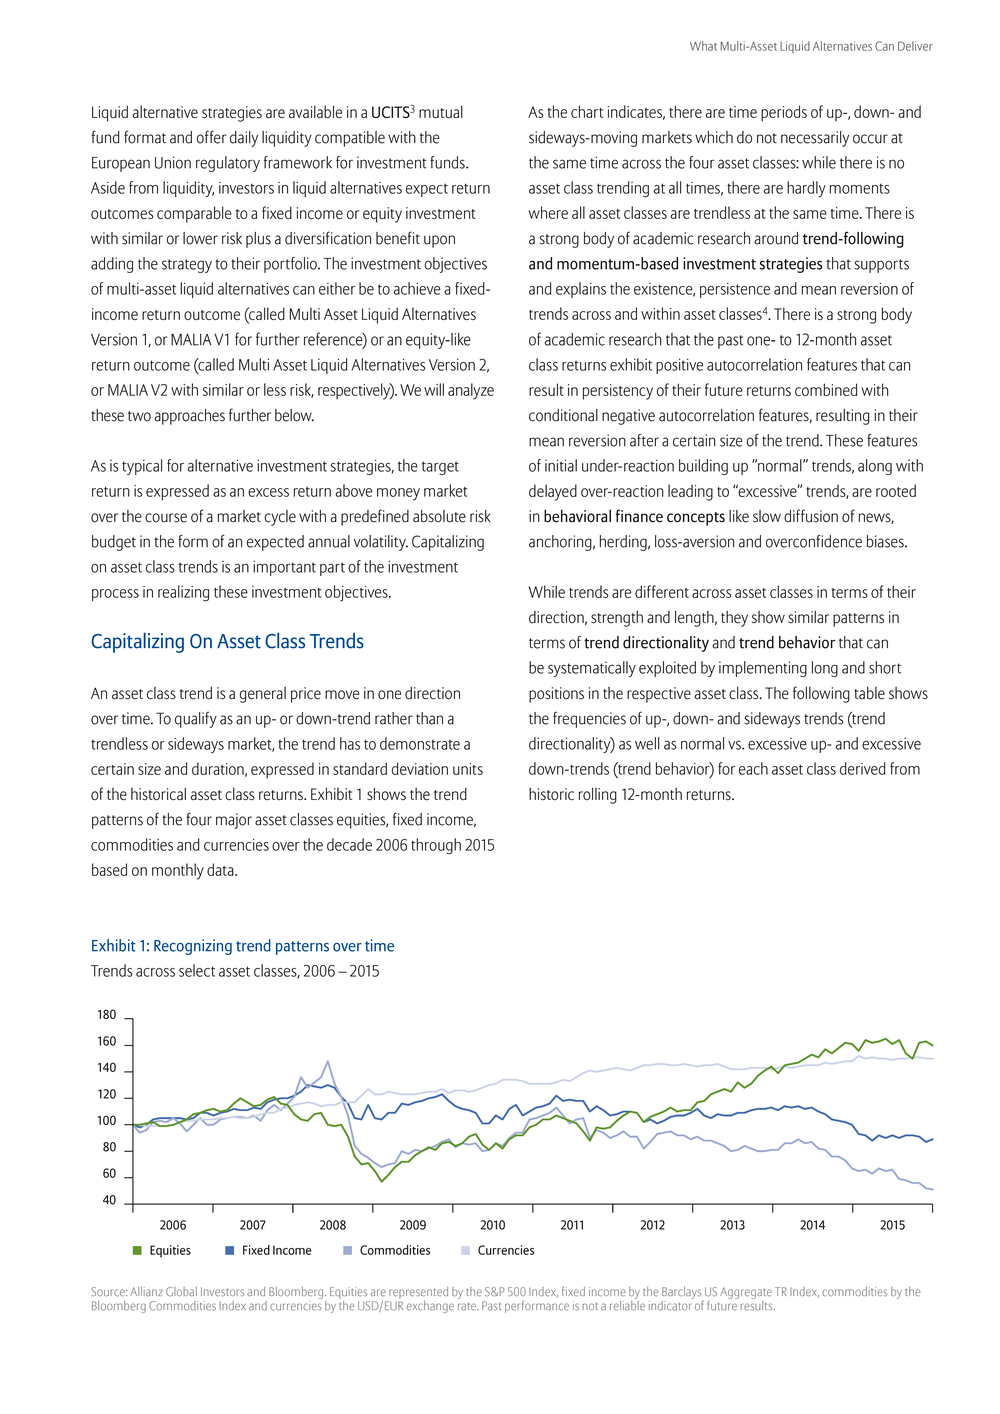 201608_Fokus Multi-Asset Liquid Alternatives_EN_Page_2.png